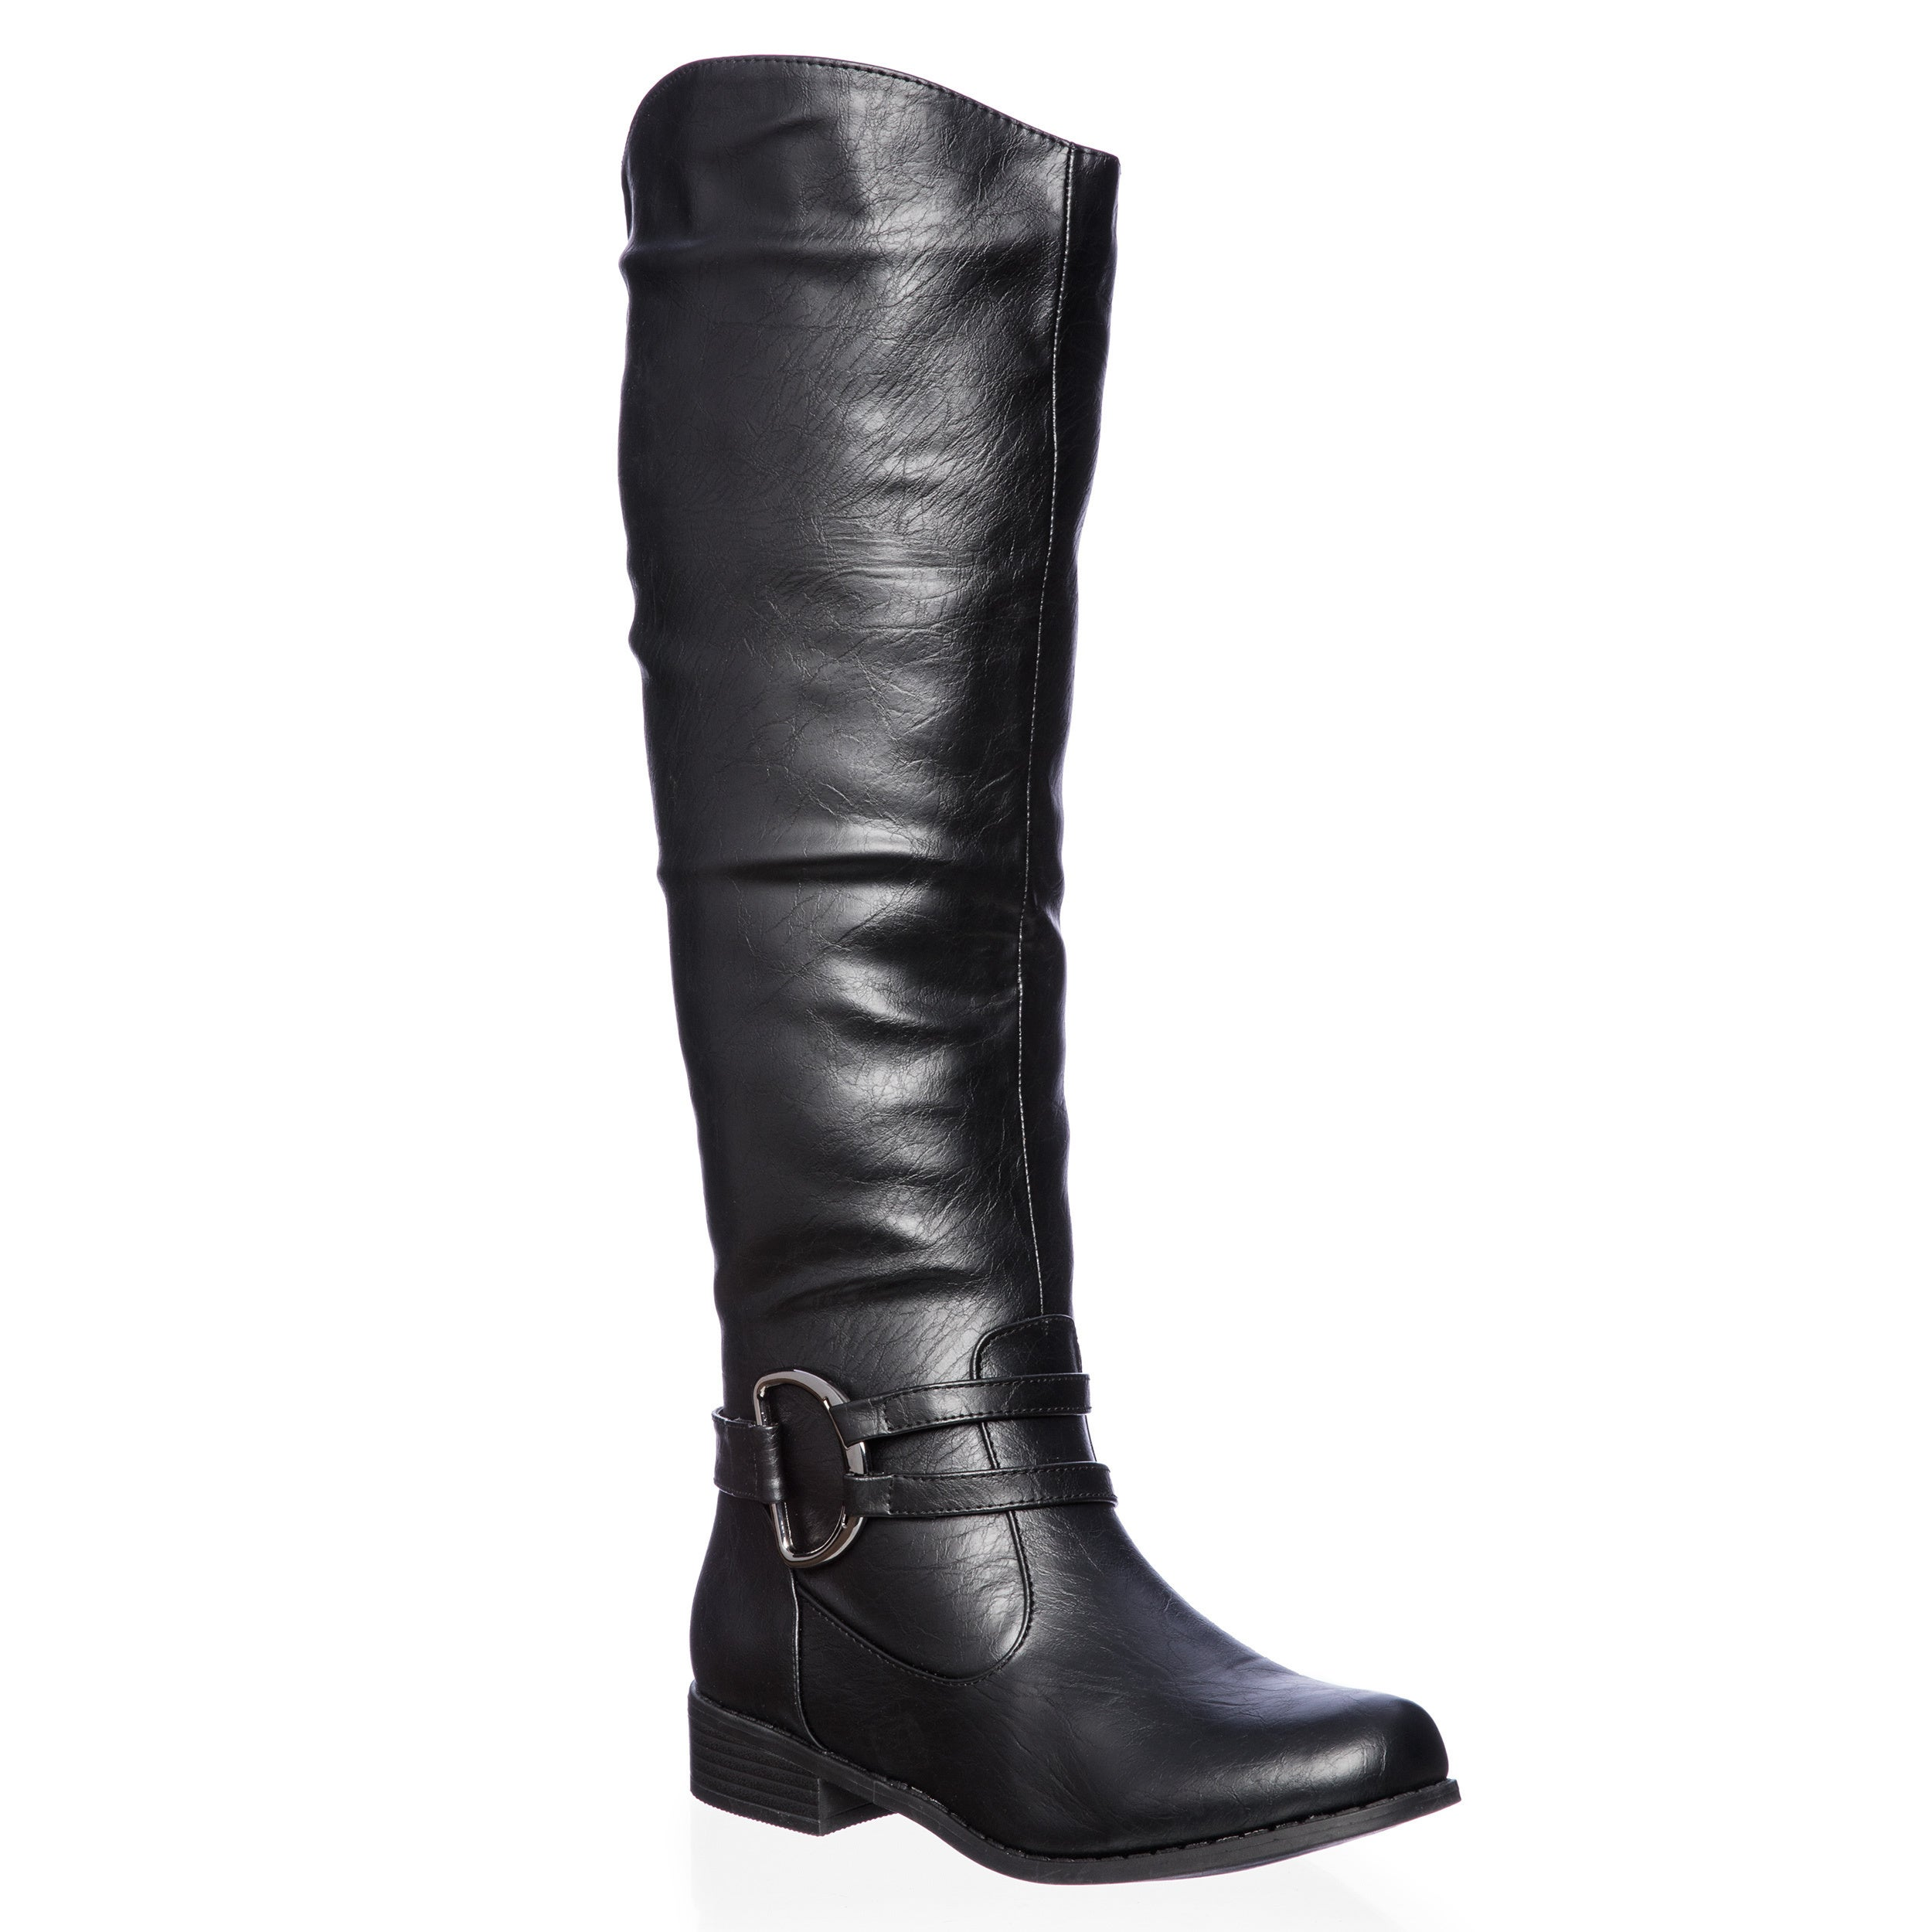 e143bbd2ec2 Journee Collection Women s  Charming-01  Regular and Wide-calf Knee-high  Riding Boot